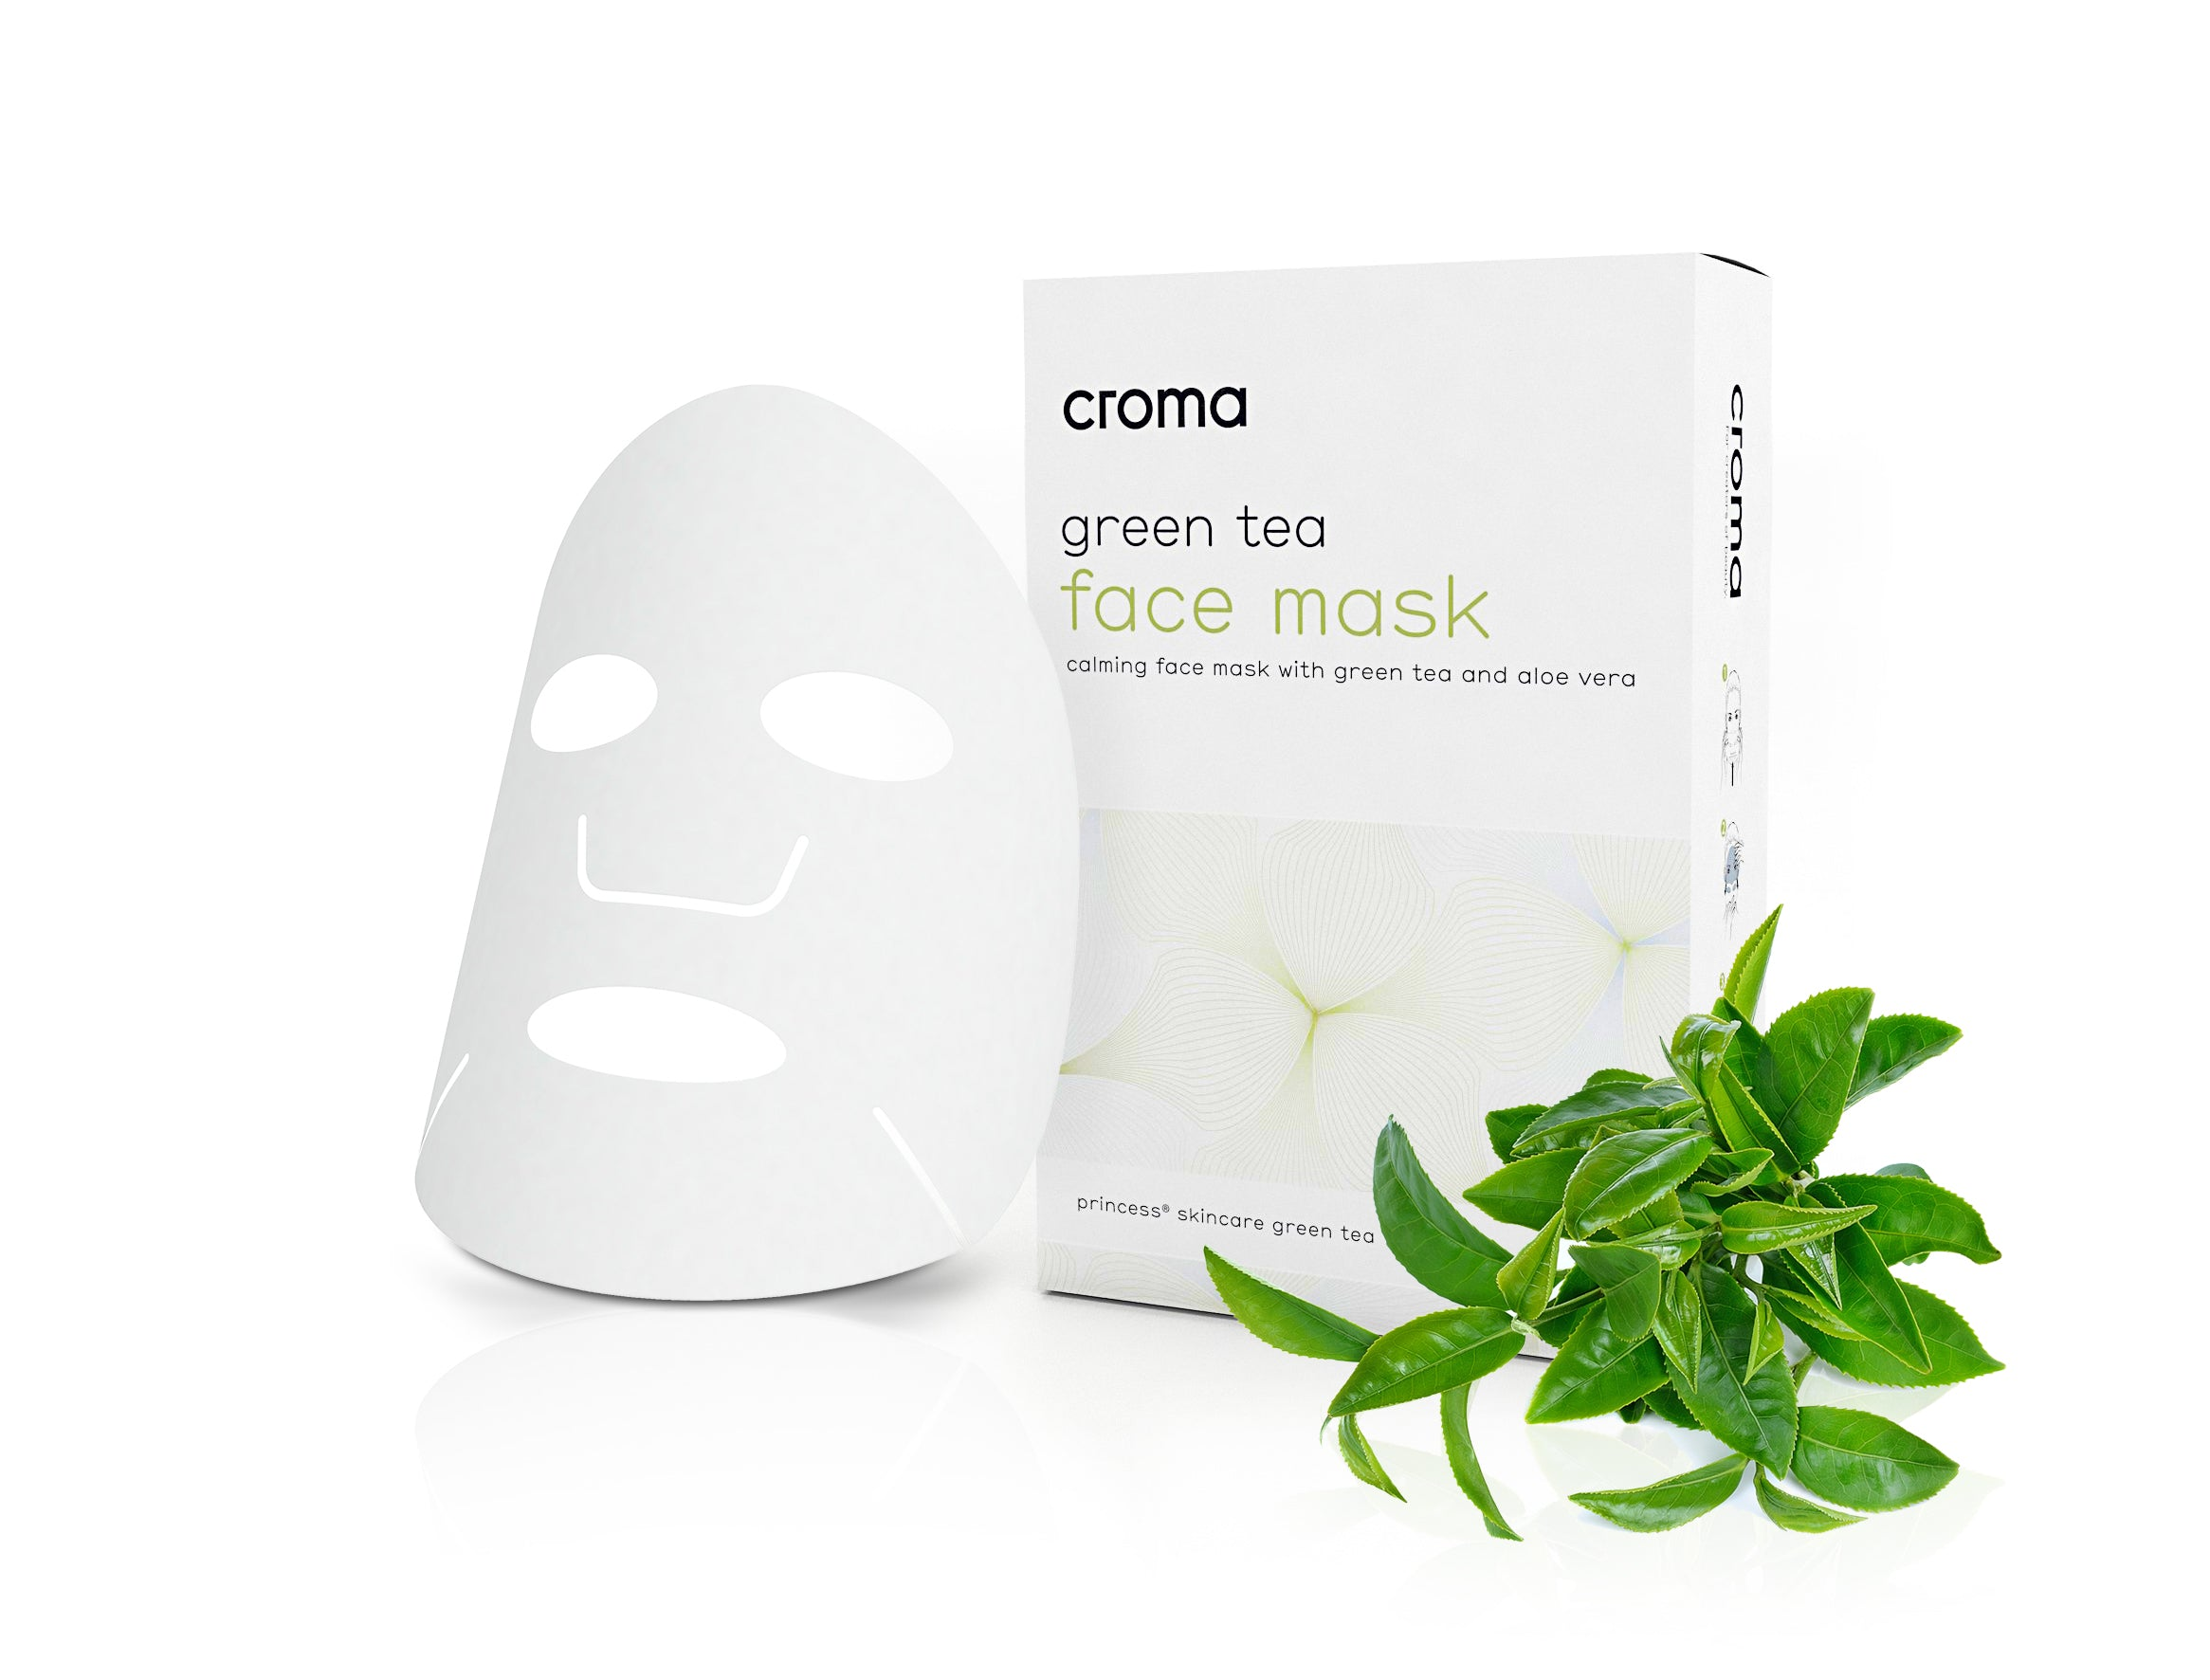 Croma - Green Tea Face Mask (8 pack)